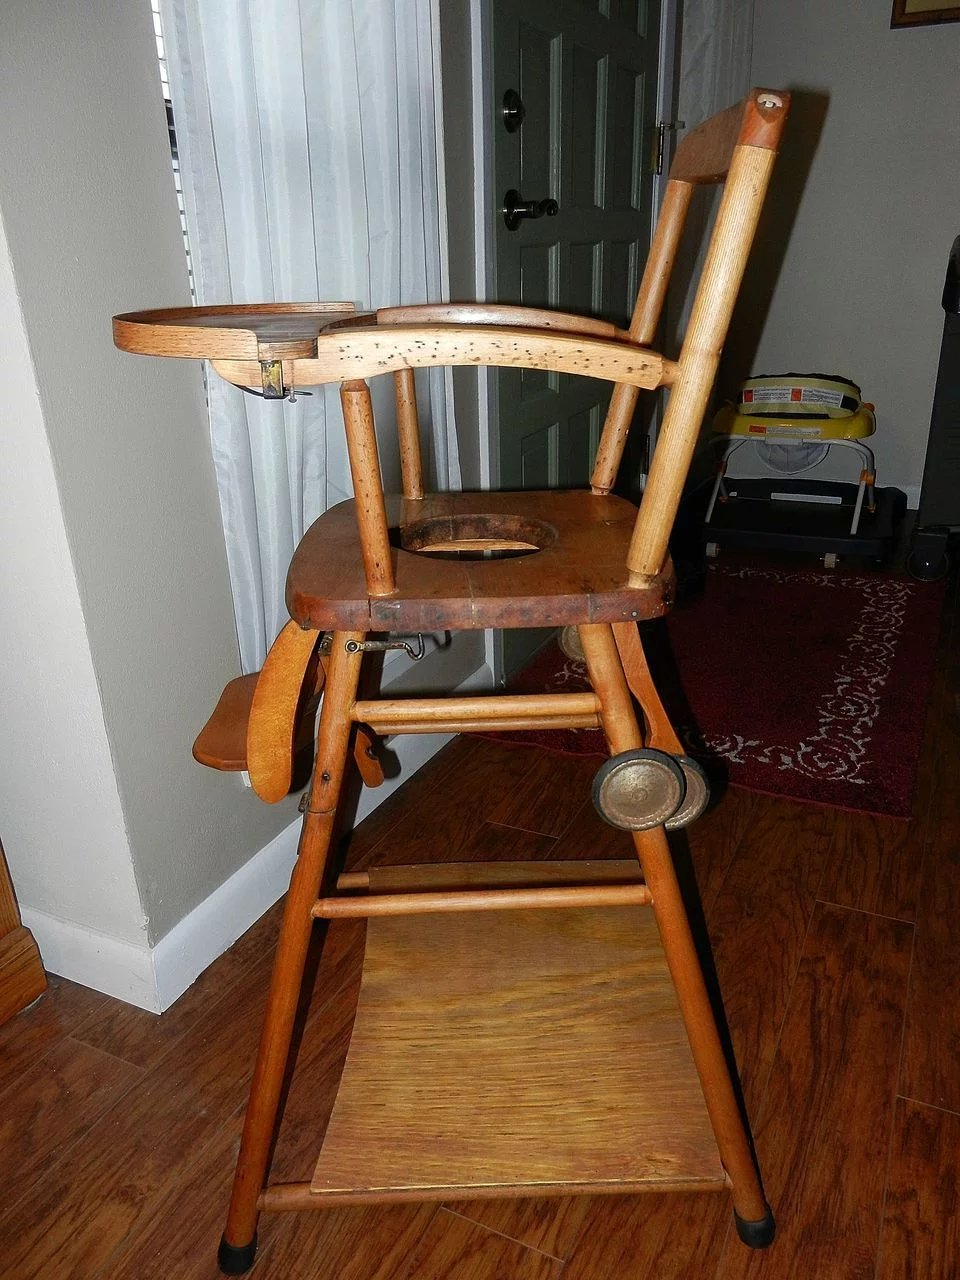 antique high chairs rocking for outside vintage wooden chair potty and play in one my click to expand